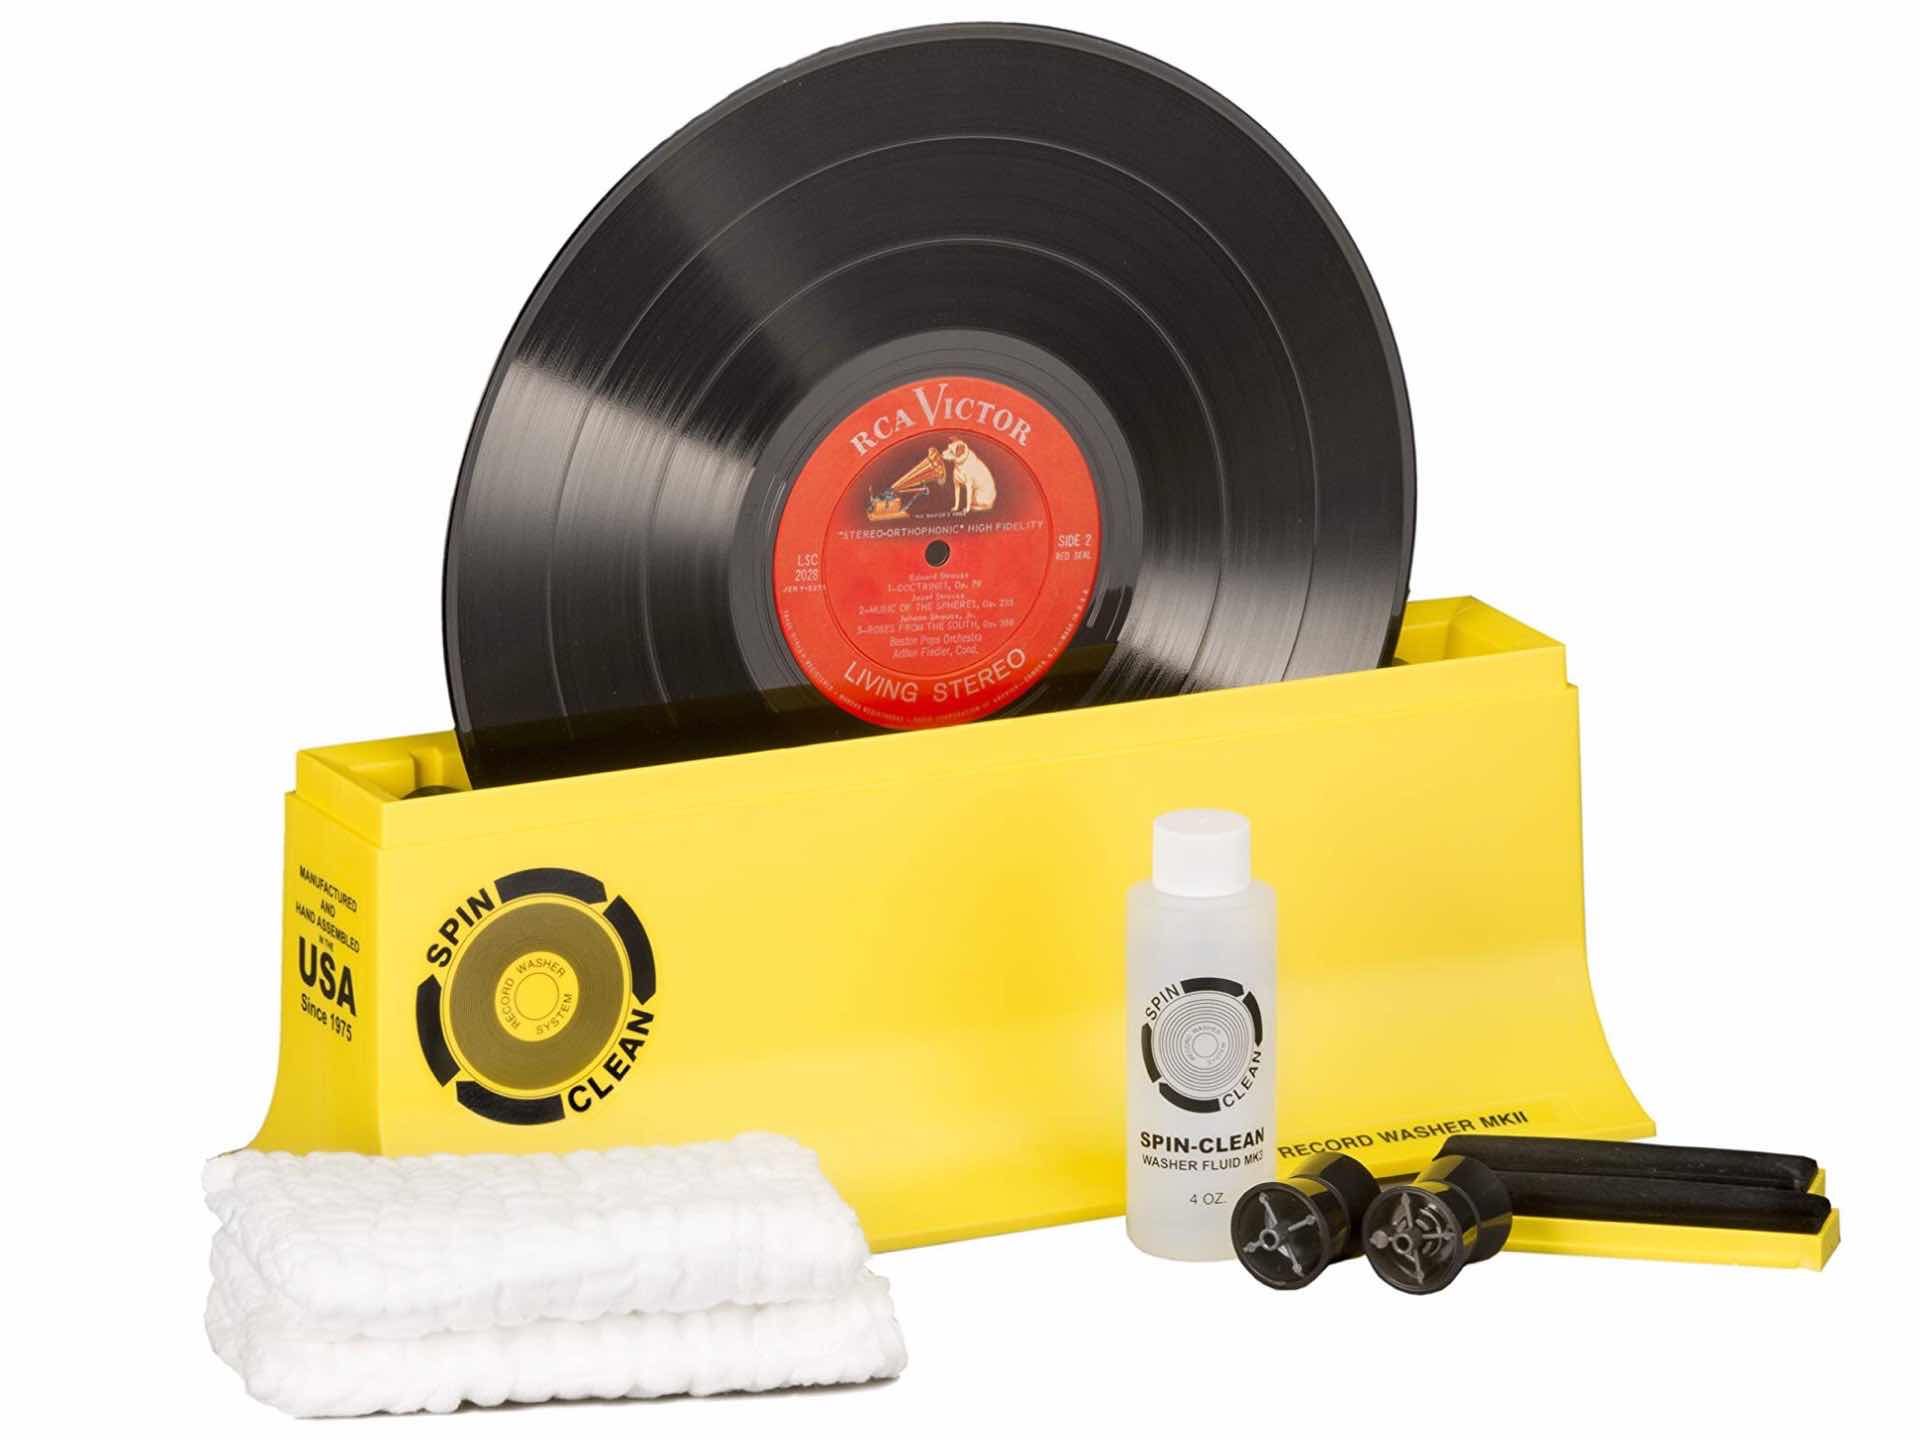 spin-clean-record-washer-mkii-complete-kit